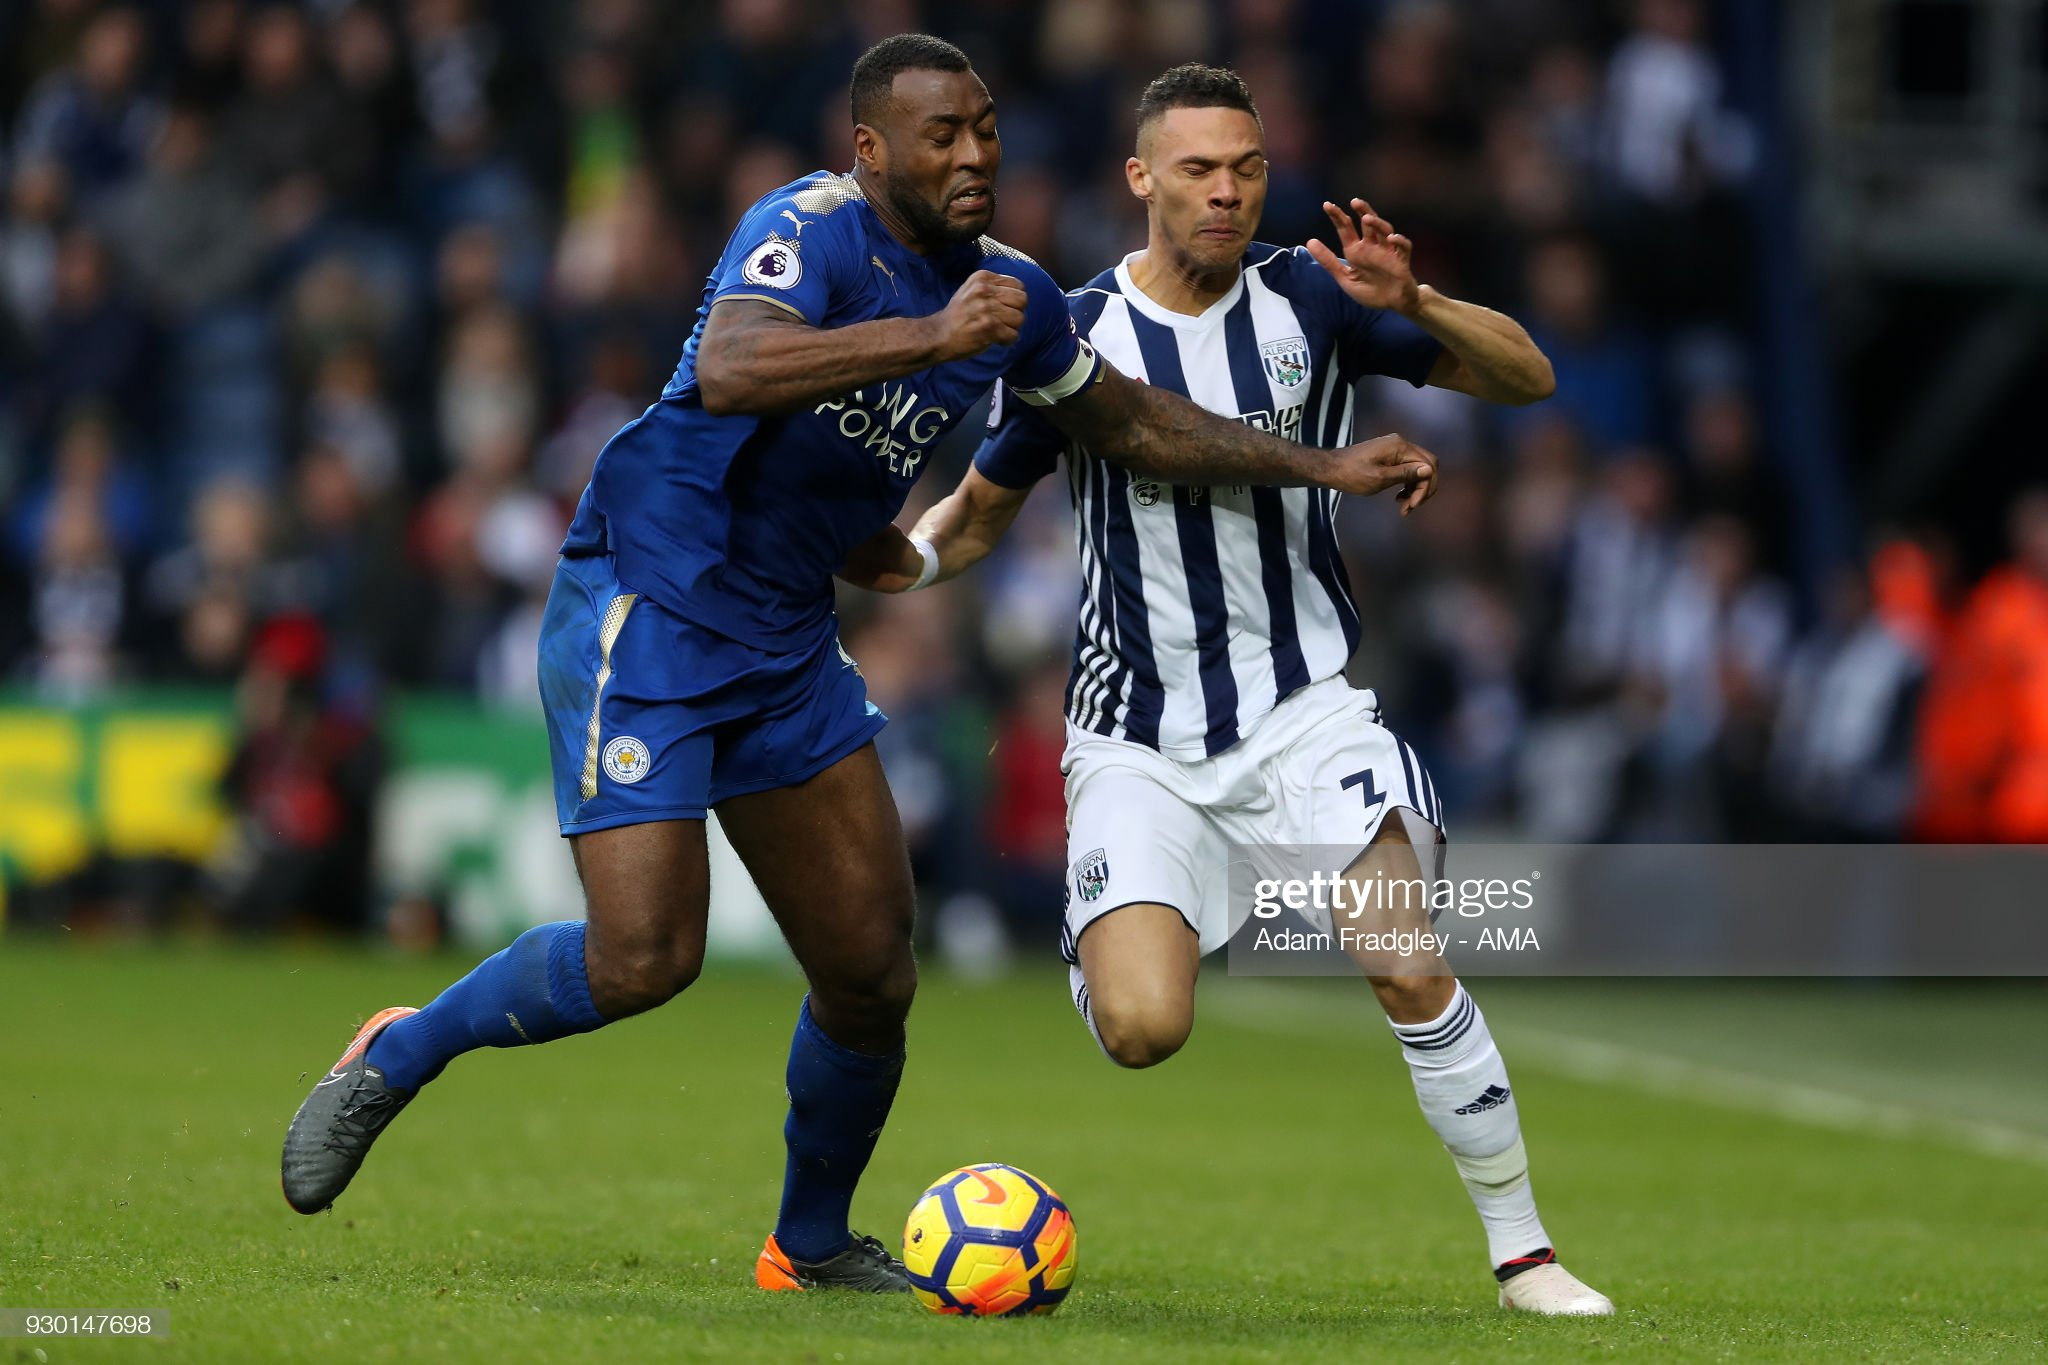 West Brom vs Leicester preview, prediction and odds